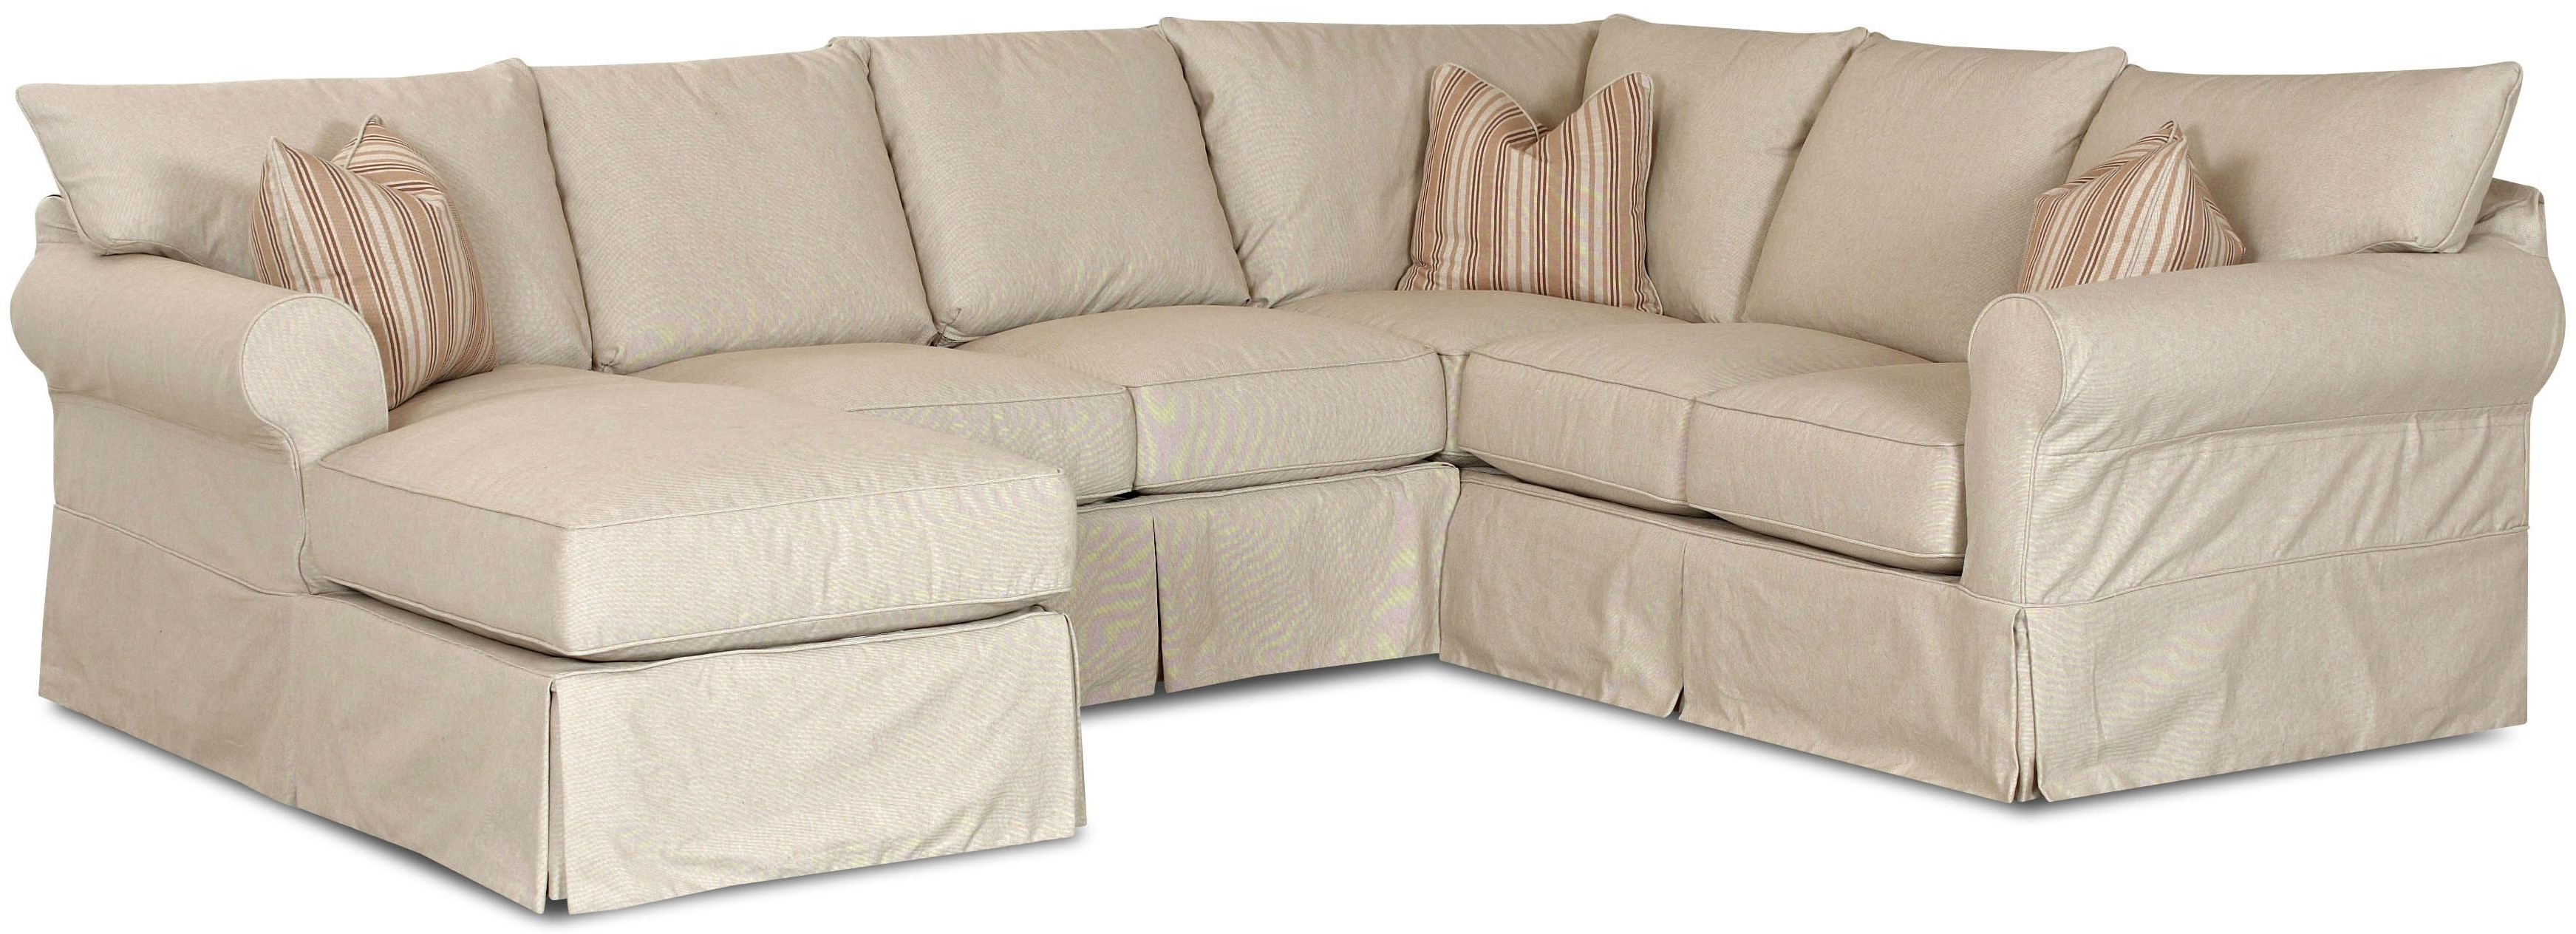 Slipcovers For Sectional Sofas With Chaise In Fashionable Slipcovers For Sectional Sofas With Chaise – Cleanupflorida (View 8 of 15)